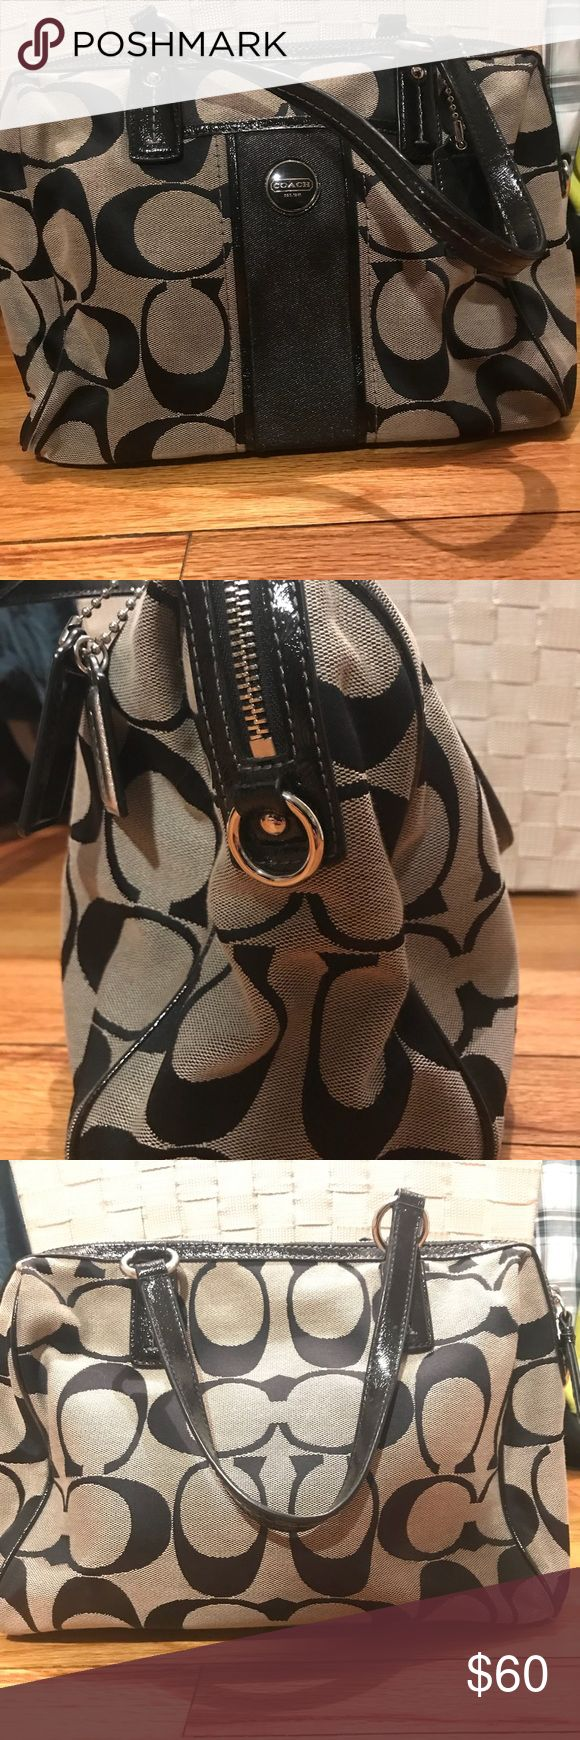 Coach purse Authentic black coach purse. Gently used. Great condition. Coach Bags Shoulder Bags